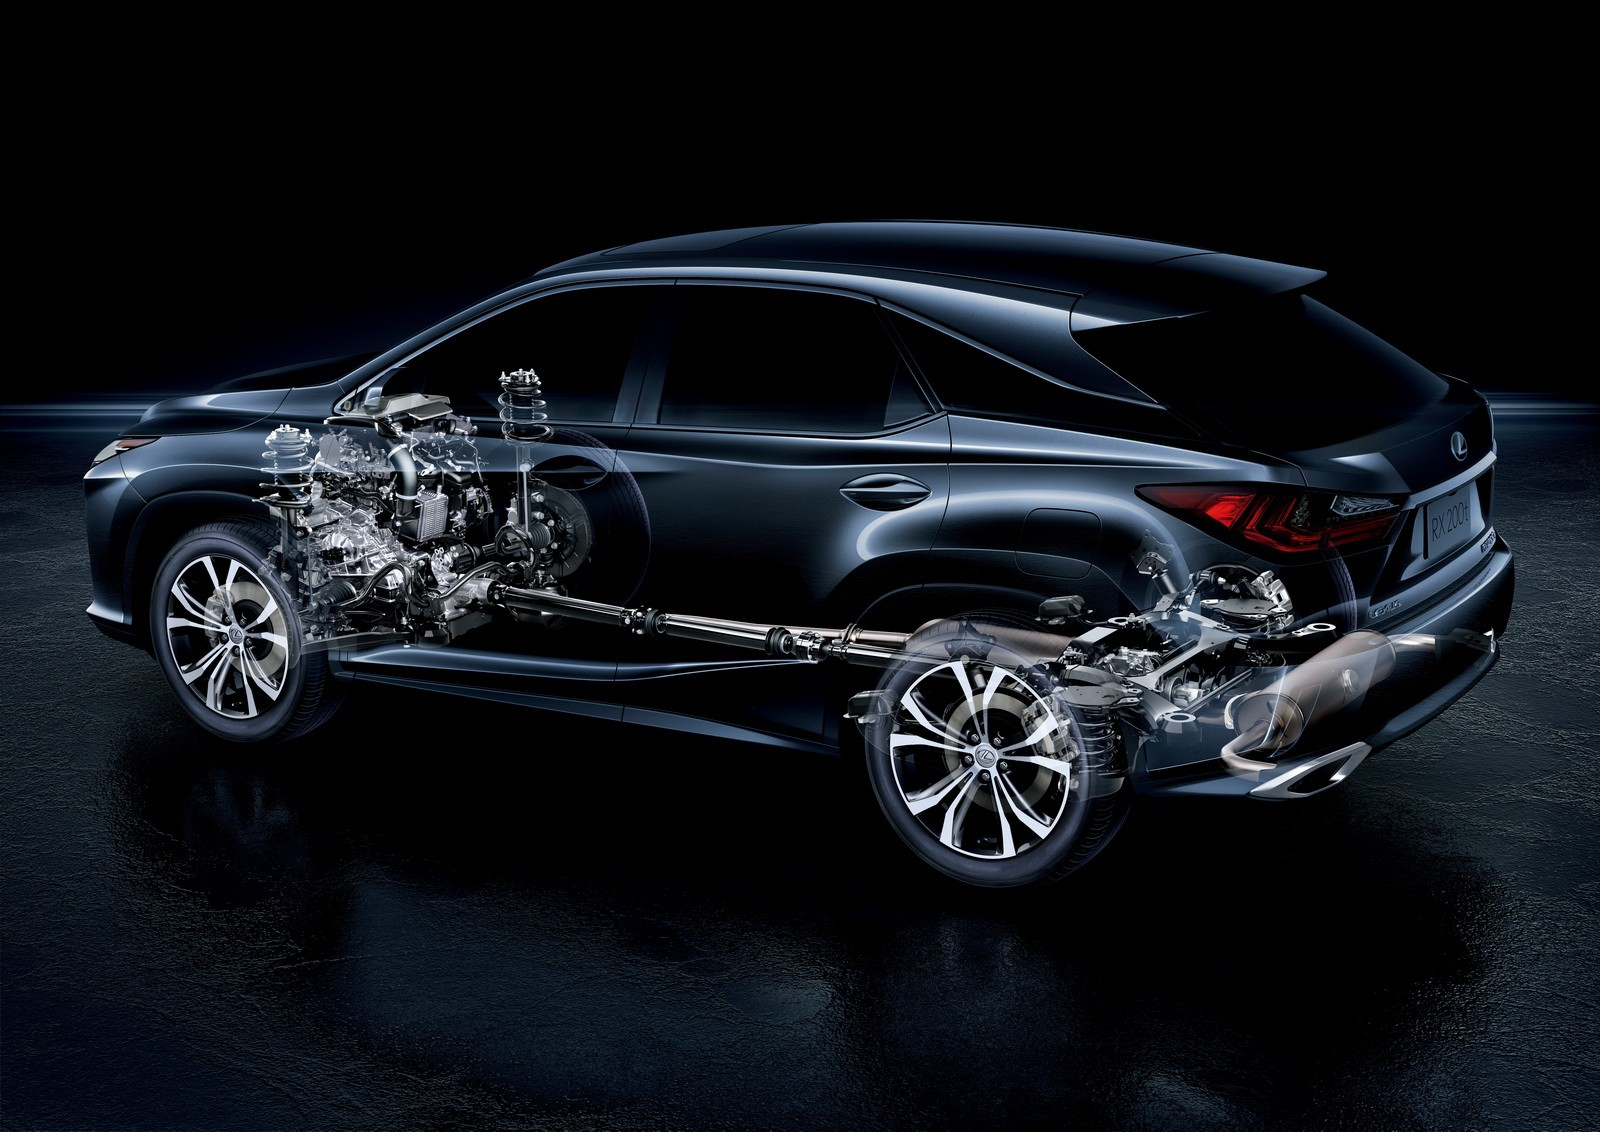 Lexus 3 Row Suv >> All-New Lexus RX Debuts in Japan with 2-Liter Turbo and Hybrid Powertrains - autoevolution